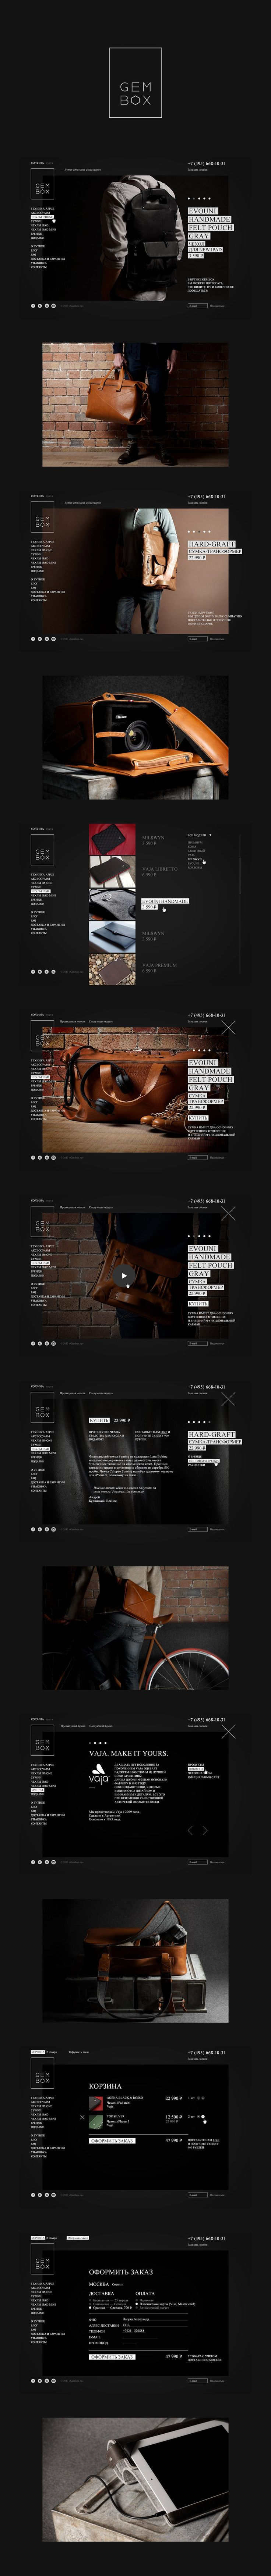 #webdesign #web #design #layout #userinterface #website < repinned by Alexander Kaiser | visit www.kaiser-alexander.de